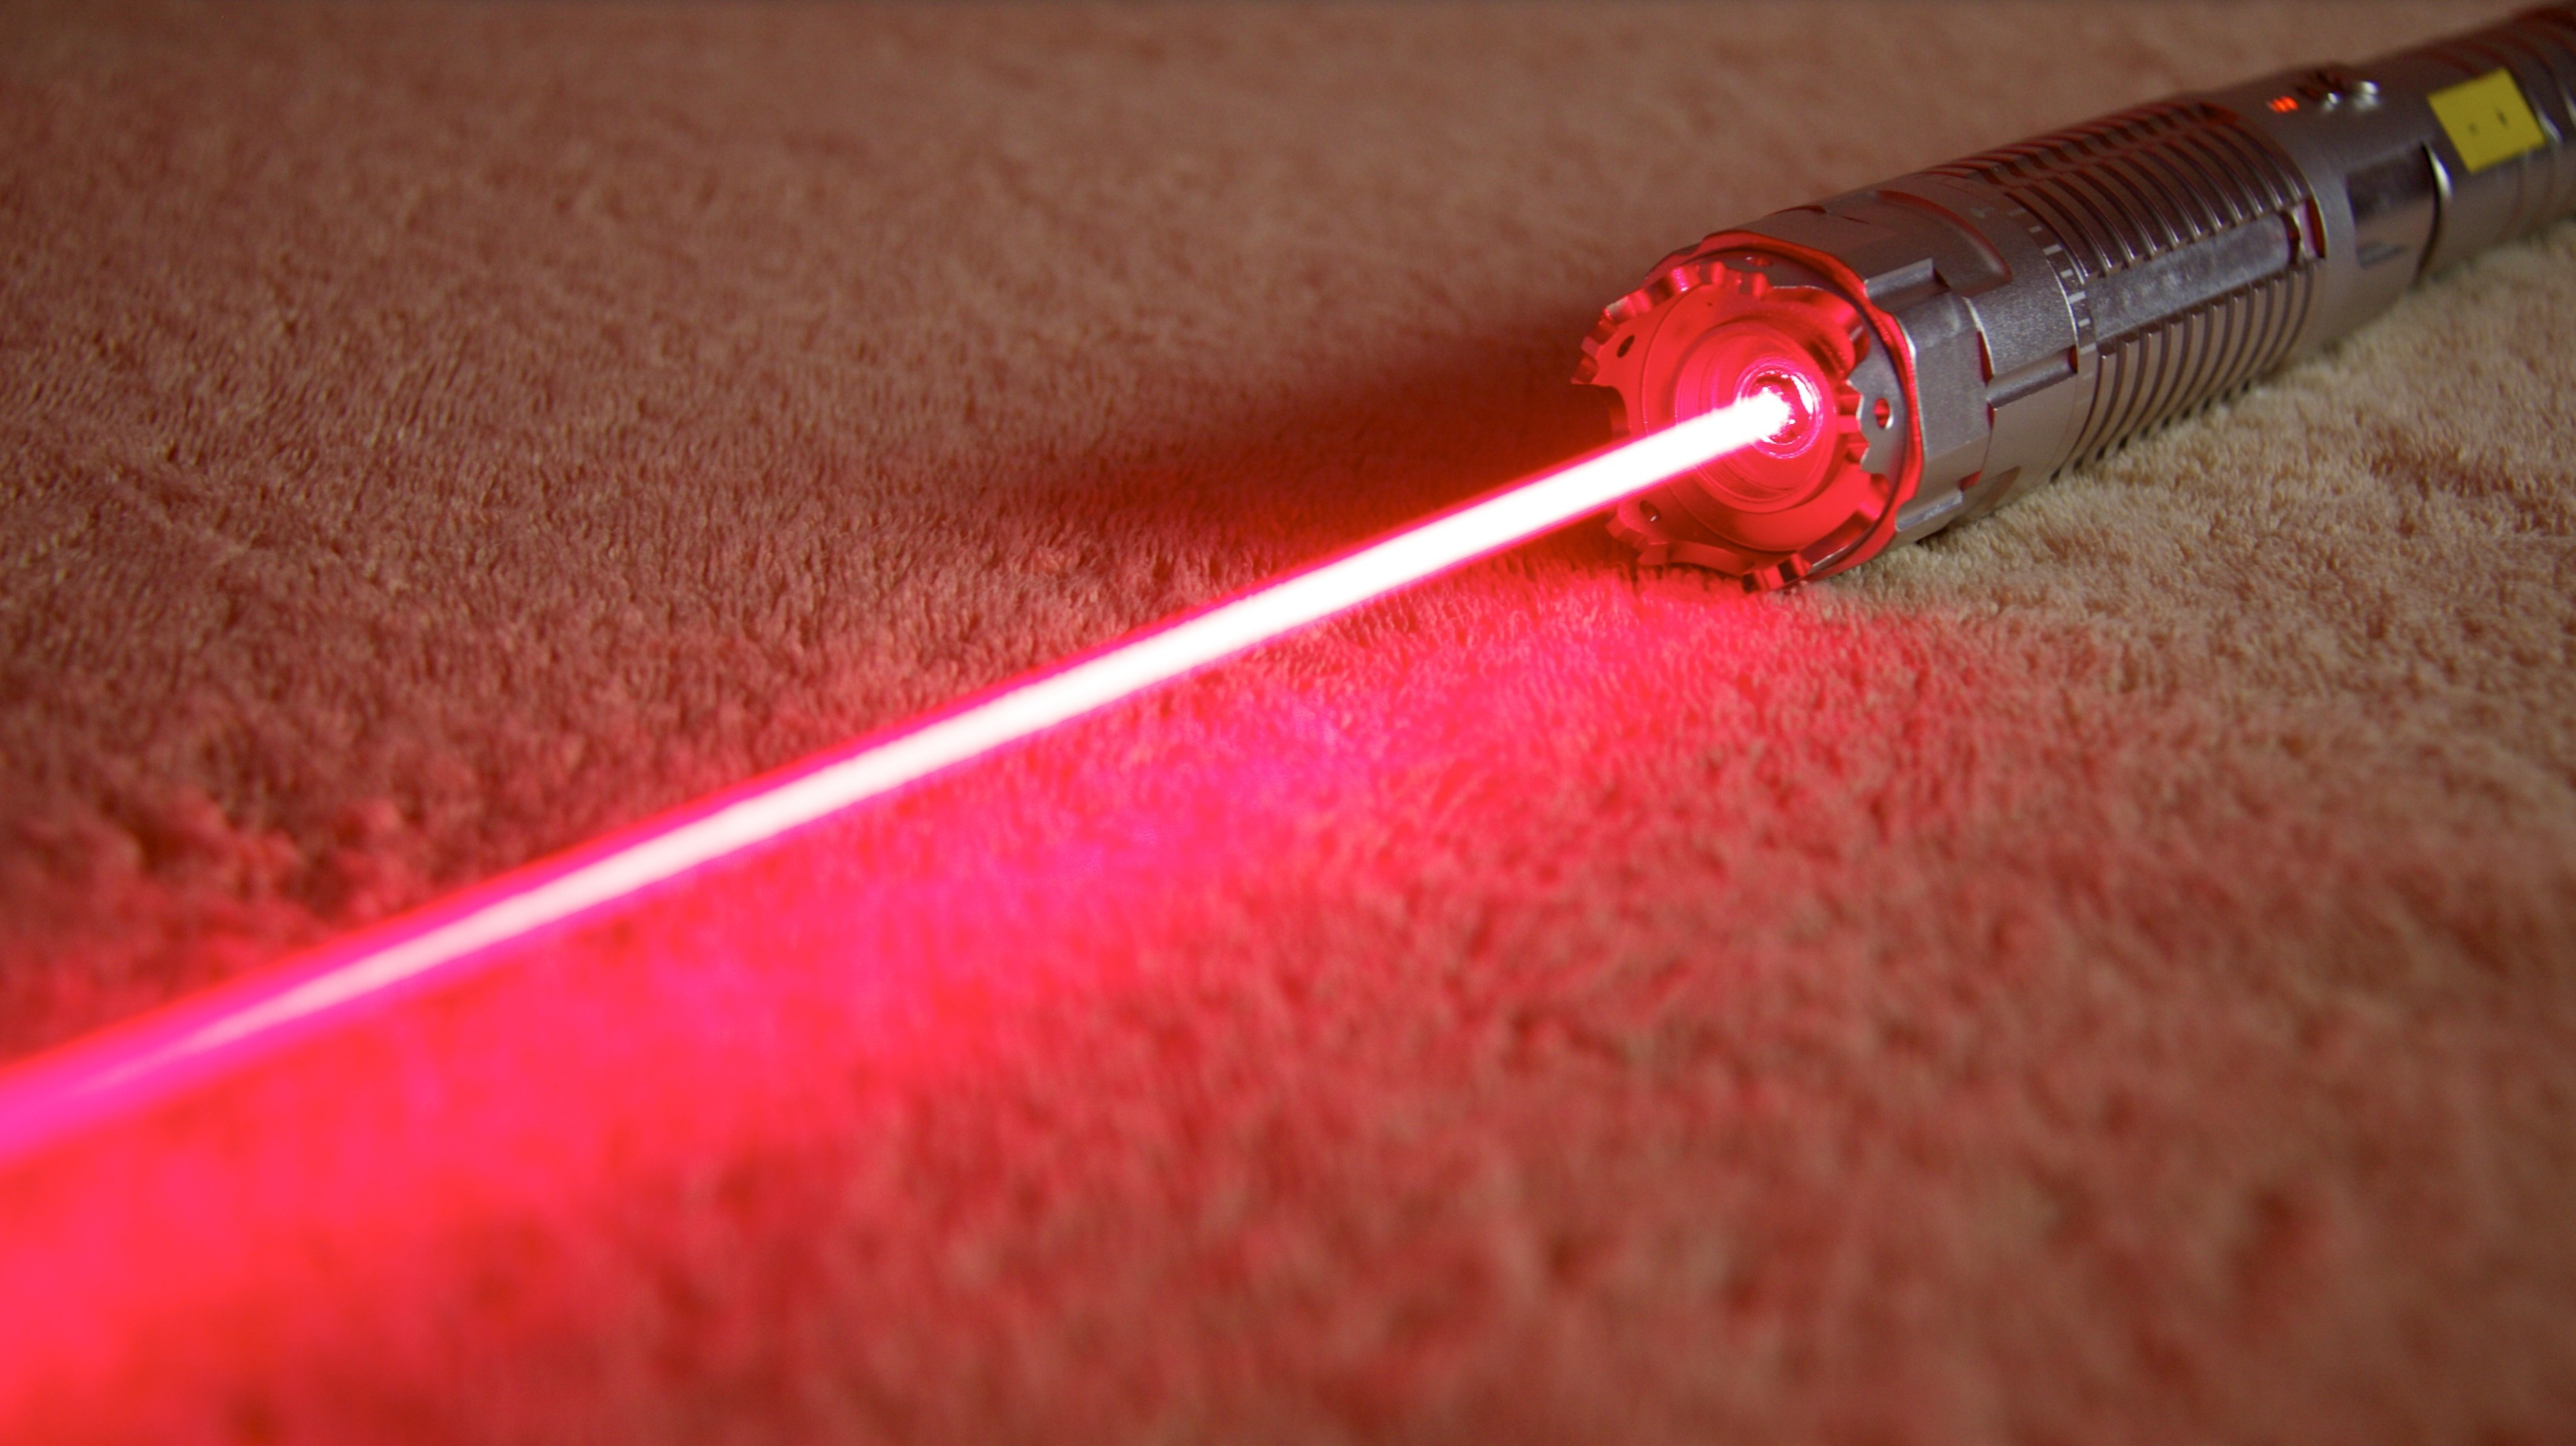 Extrem Laserpointer Rot 10000mW